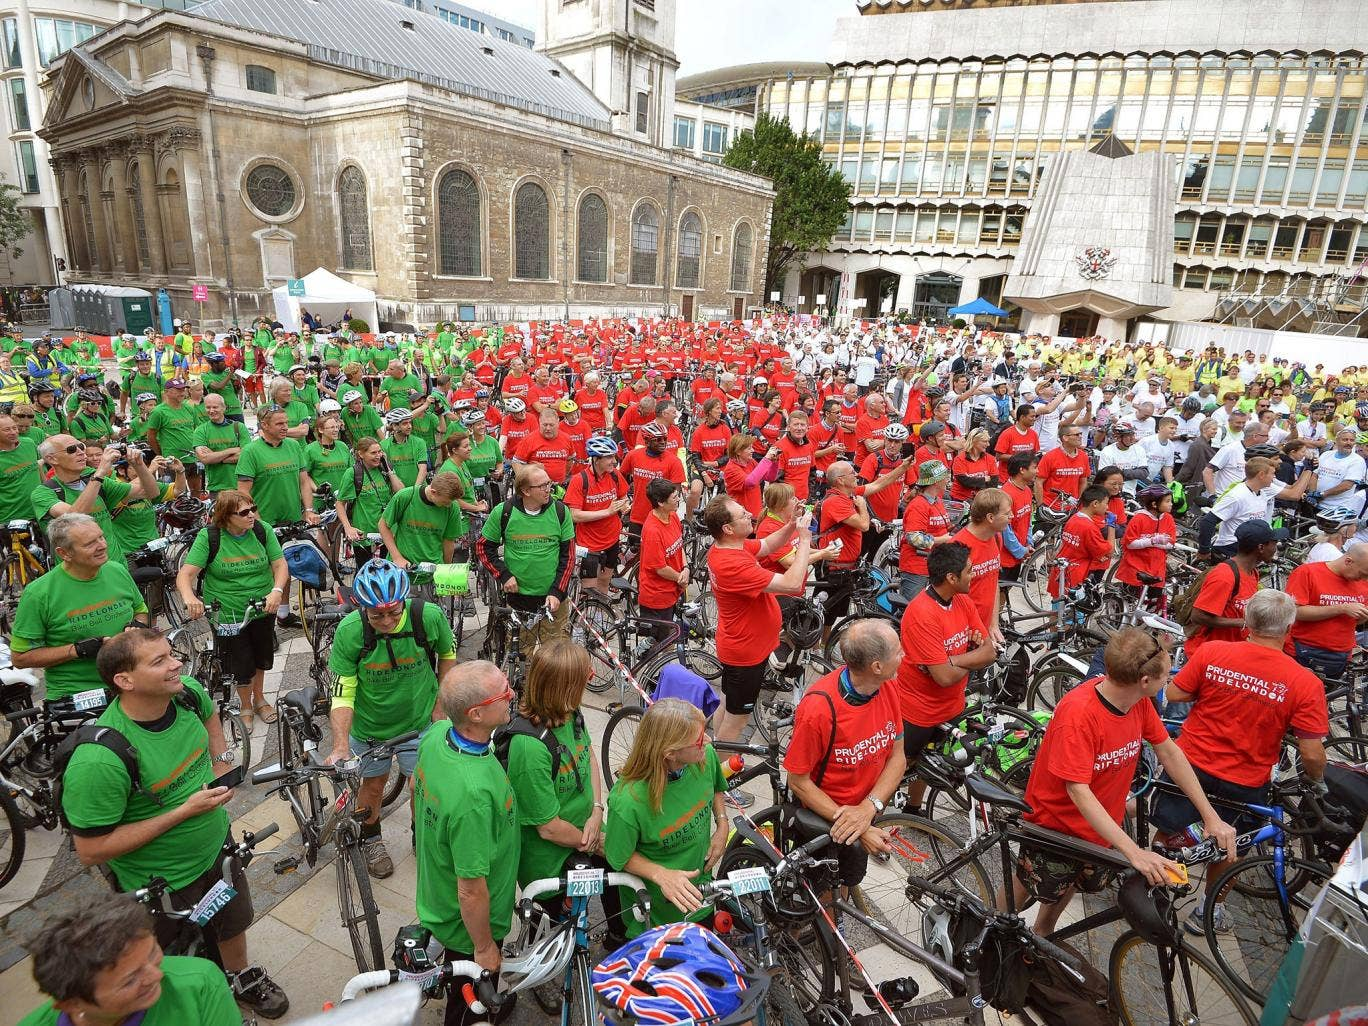 Some of the 639 cyclists bidding for a Guinness World Record for the largest bicycle bell ensemble, in front of the Guildhall in the City of London